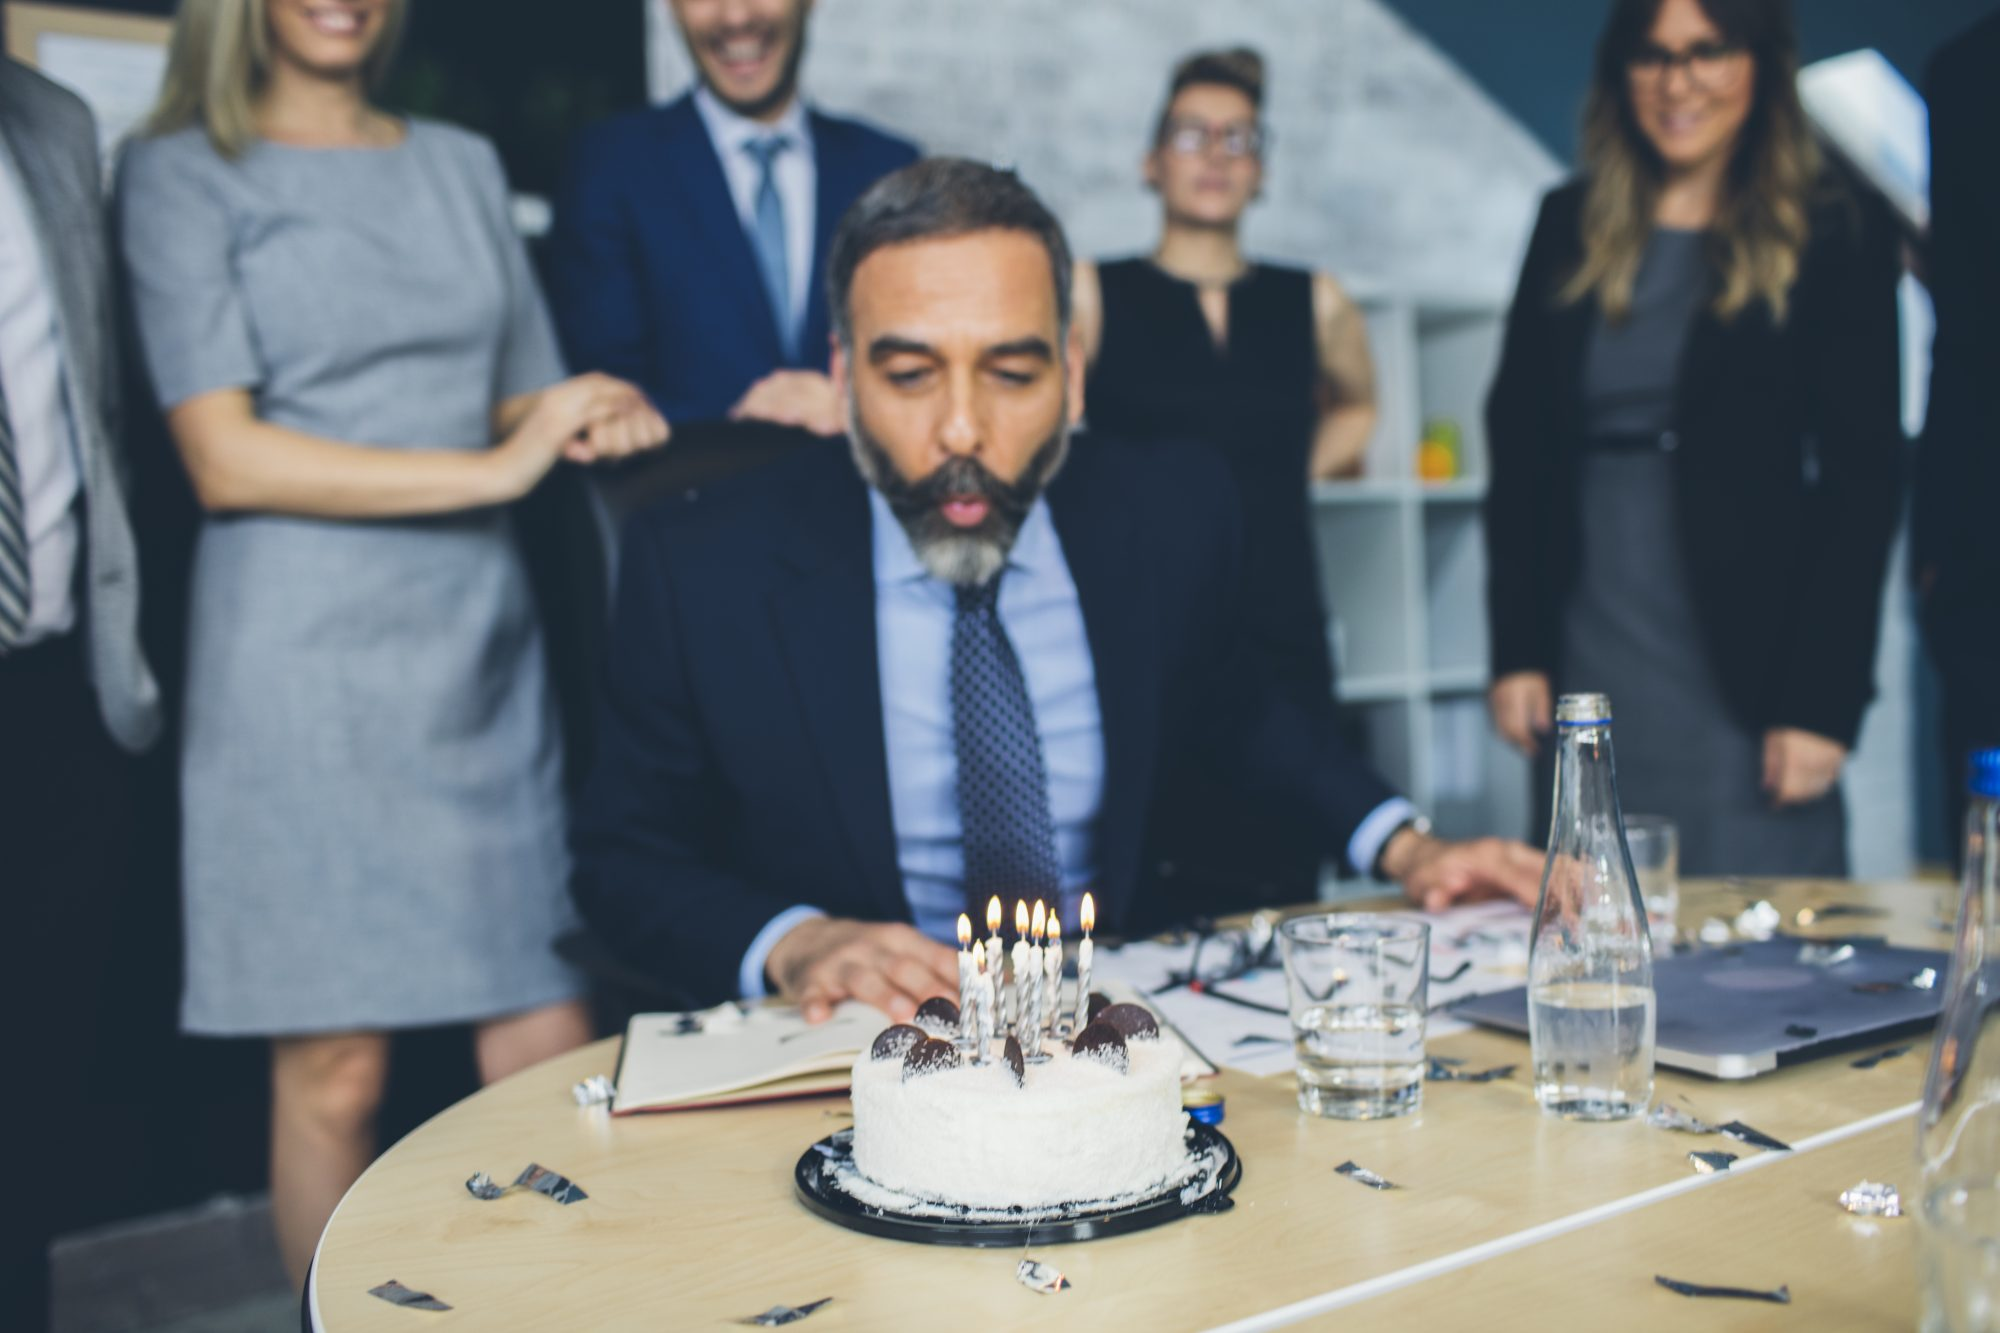 Man Blowing Birthday Candles in Office